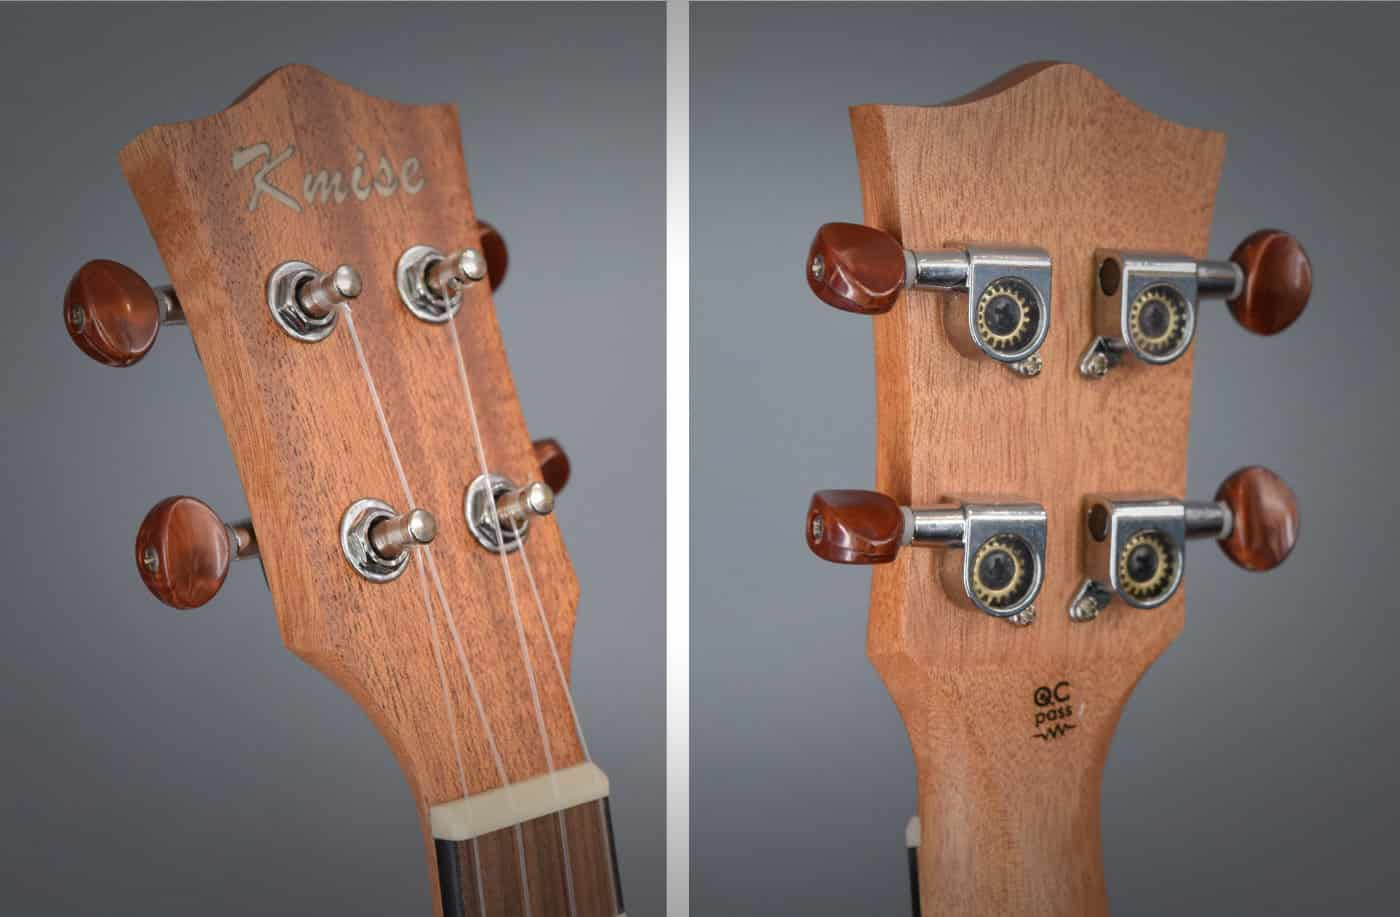 Kmise Ukulele Review - Headstock and Tuners